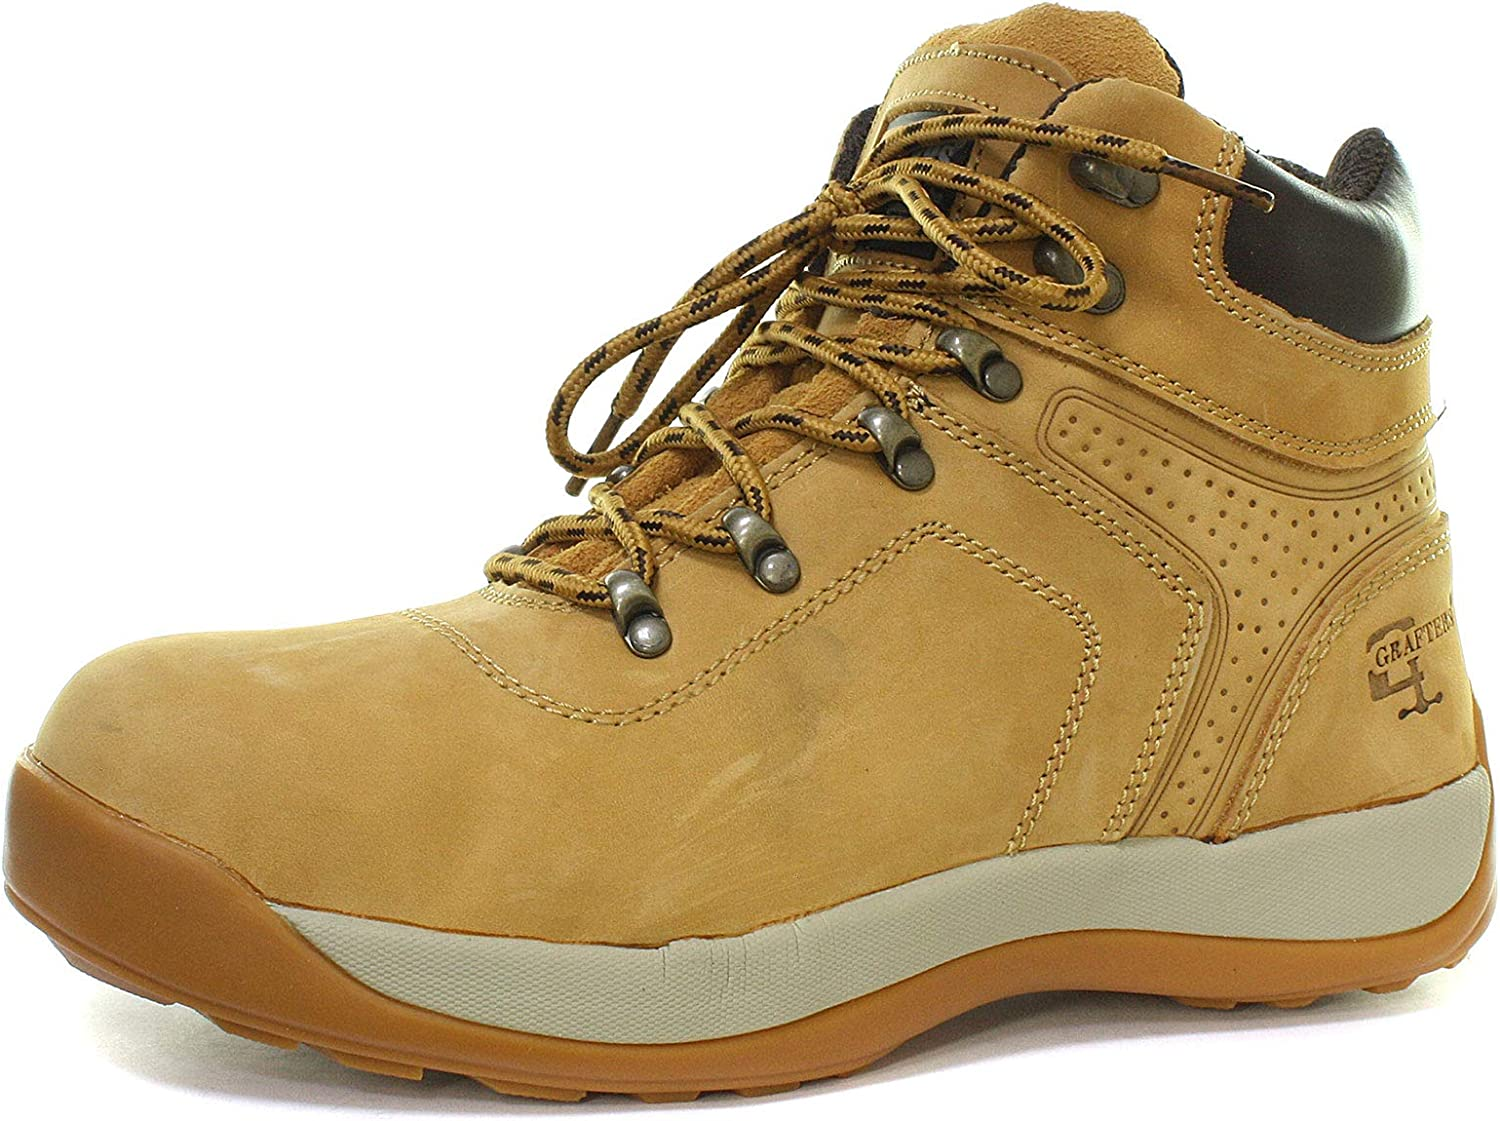 Grafters M868 Unisex Safety Stiefel